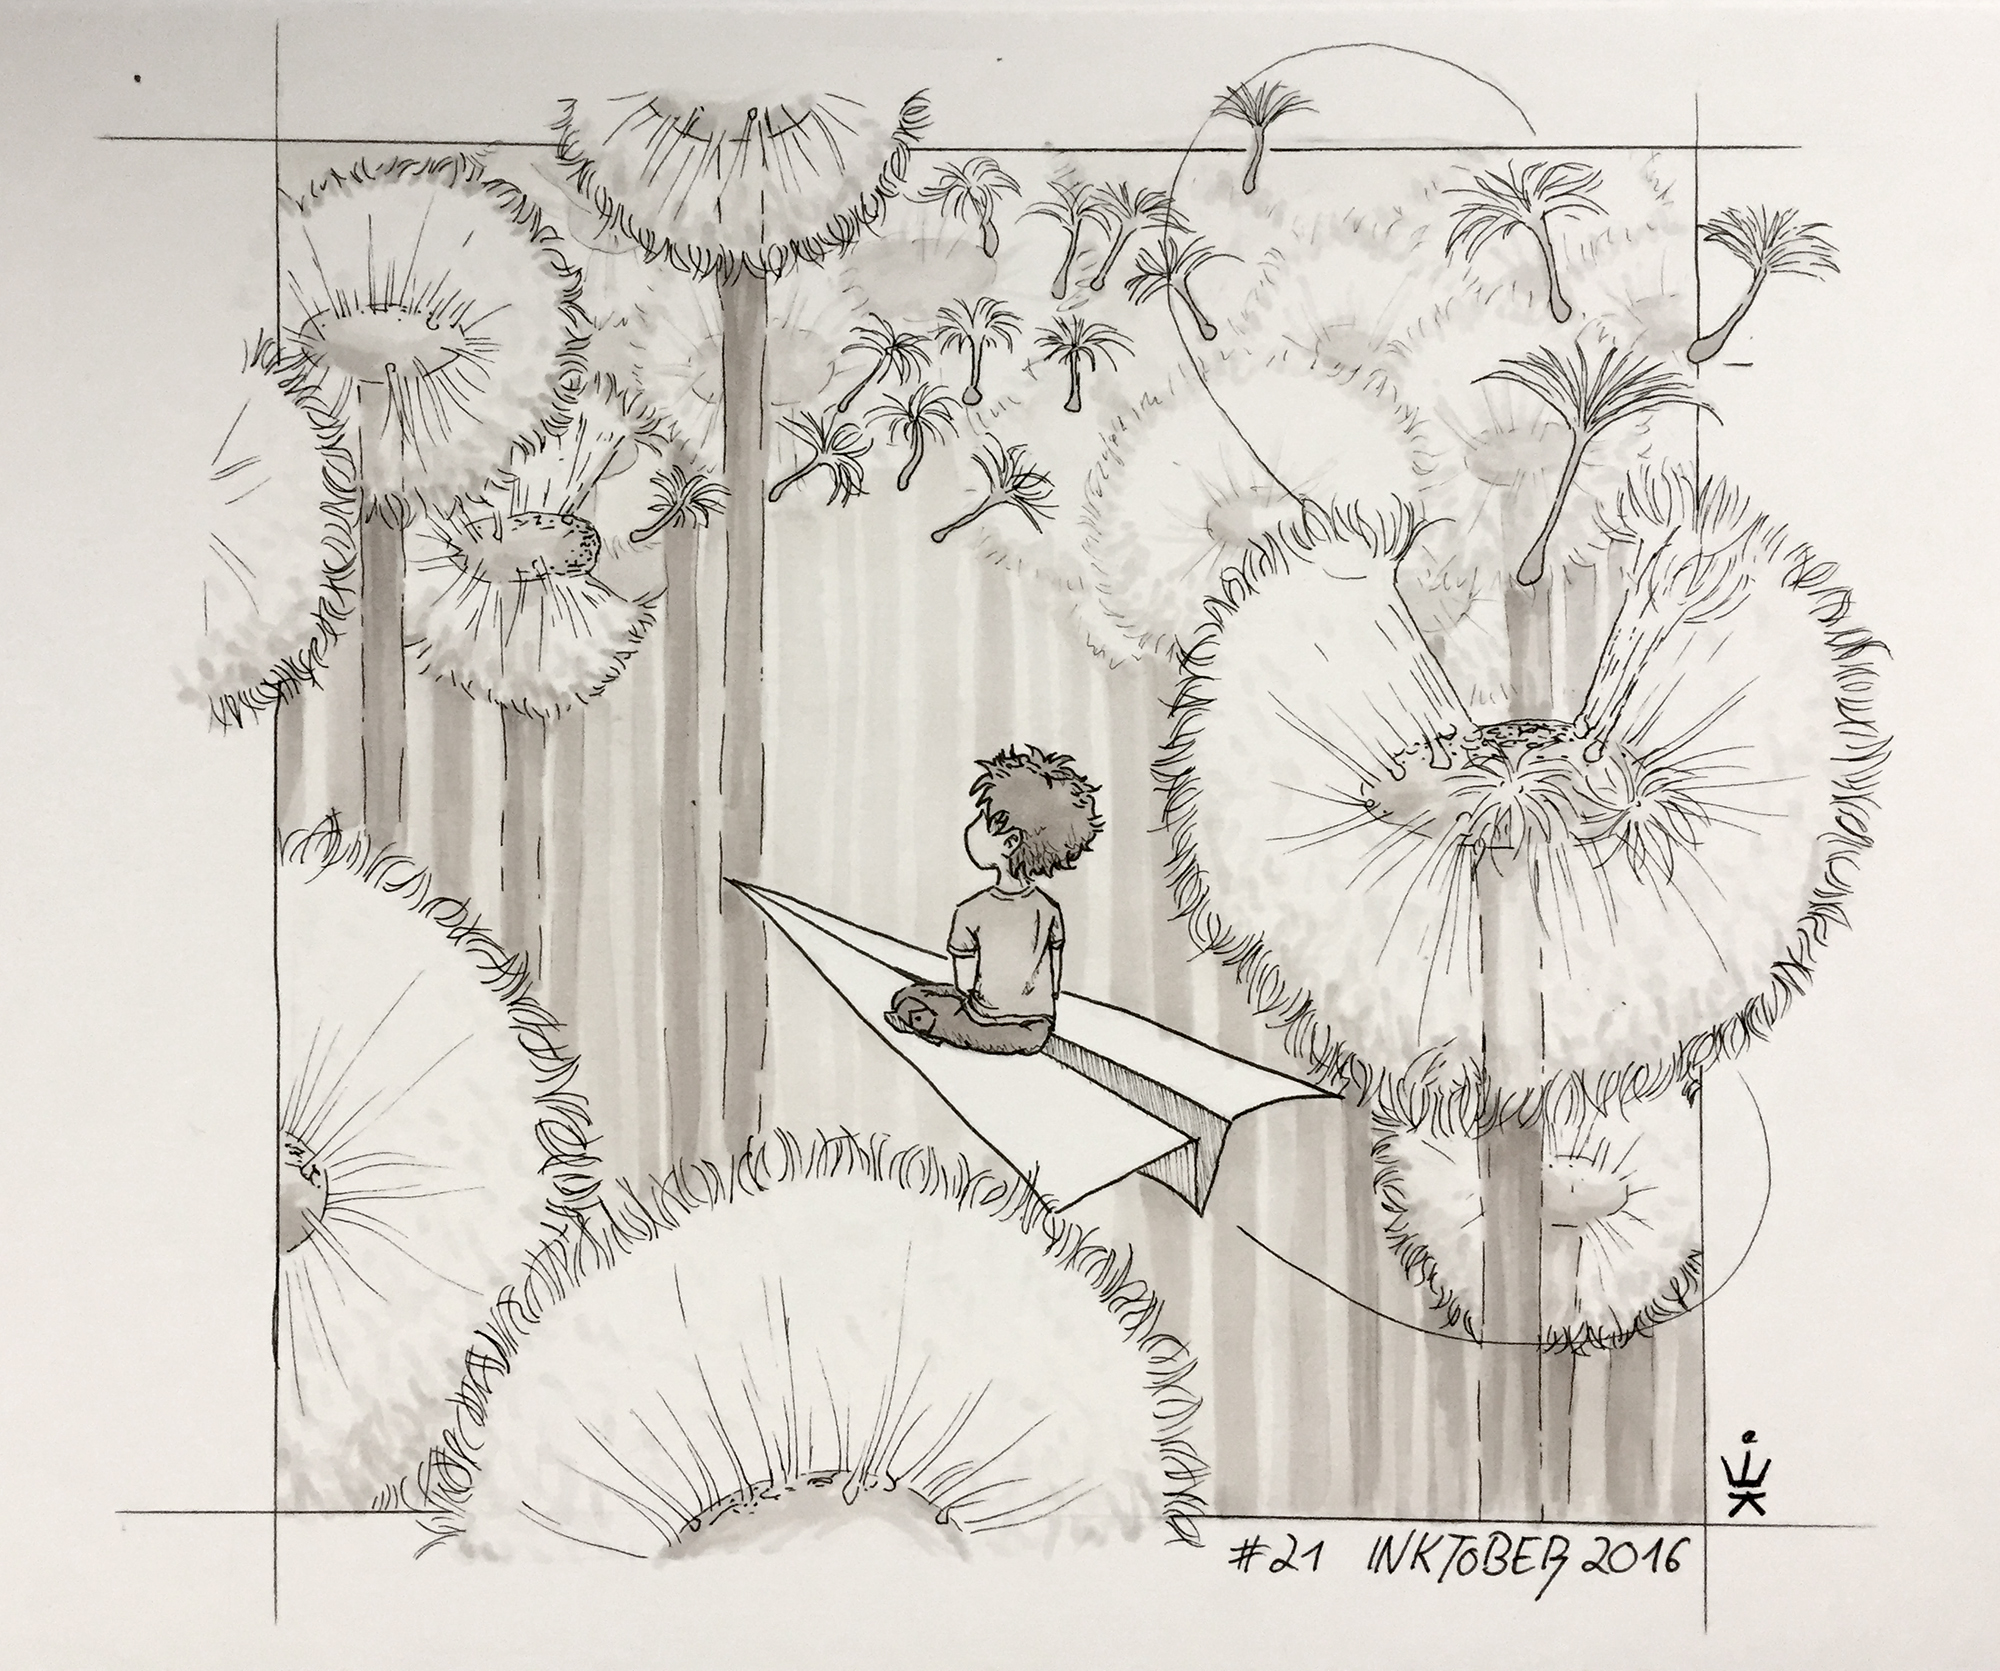 Inktober 21: Grove of wishes (c) Esther Wagner